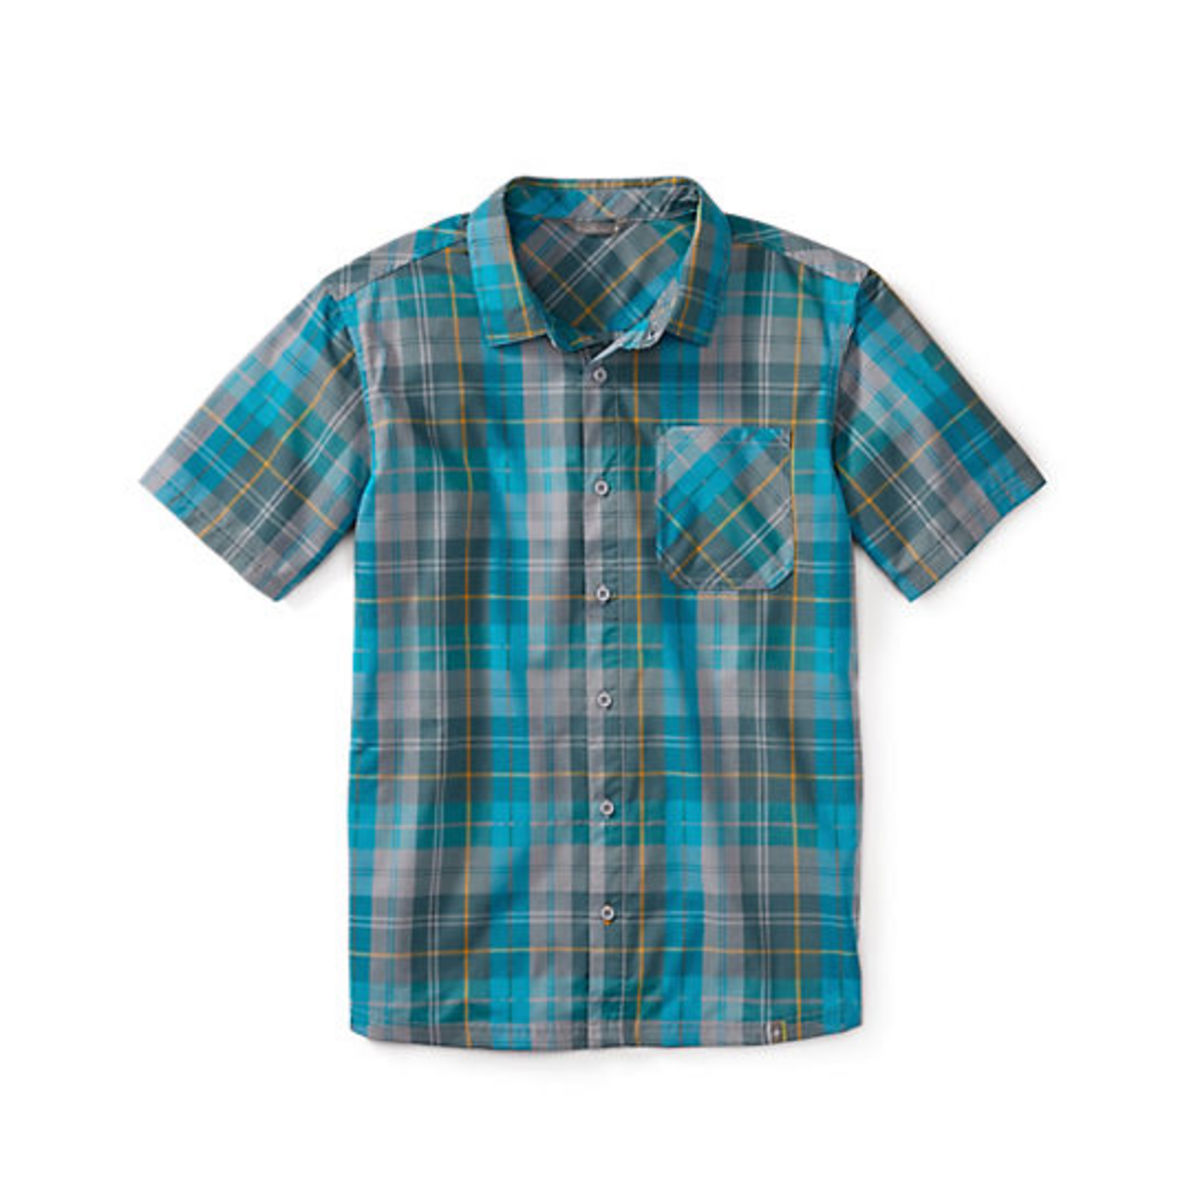 Smartwool Men's Summit County Plaid Shirt